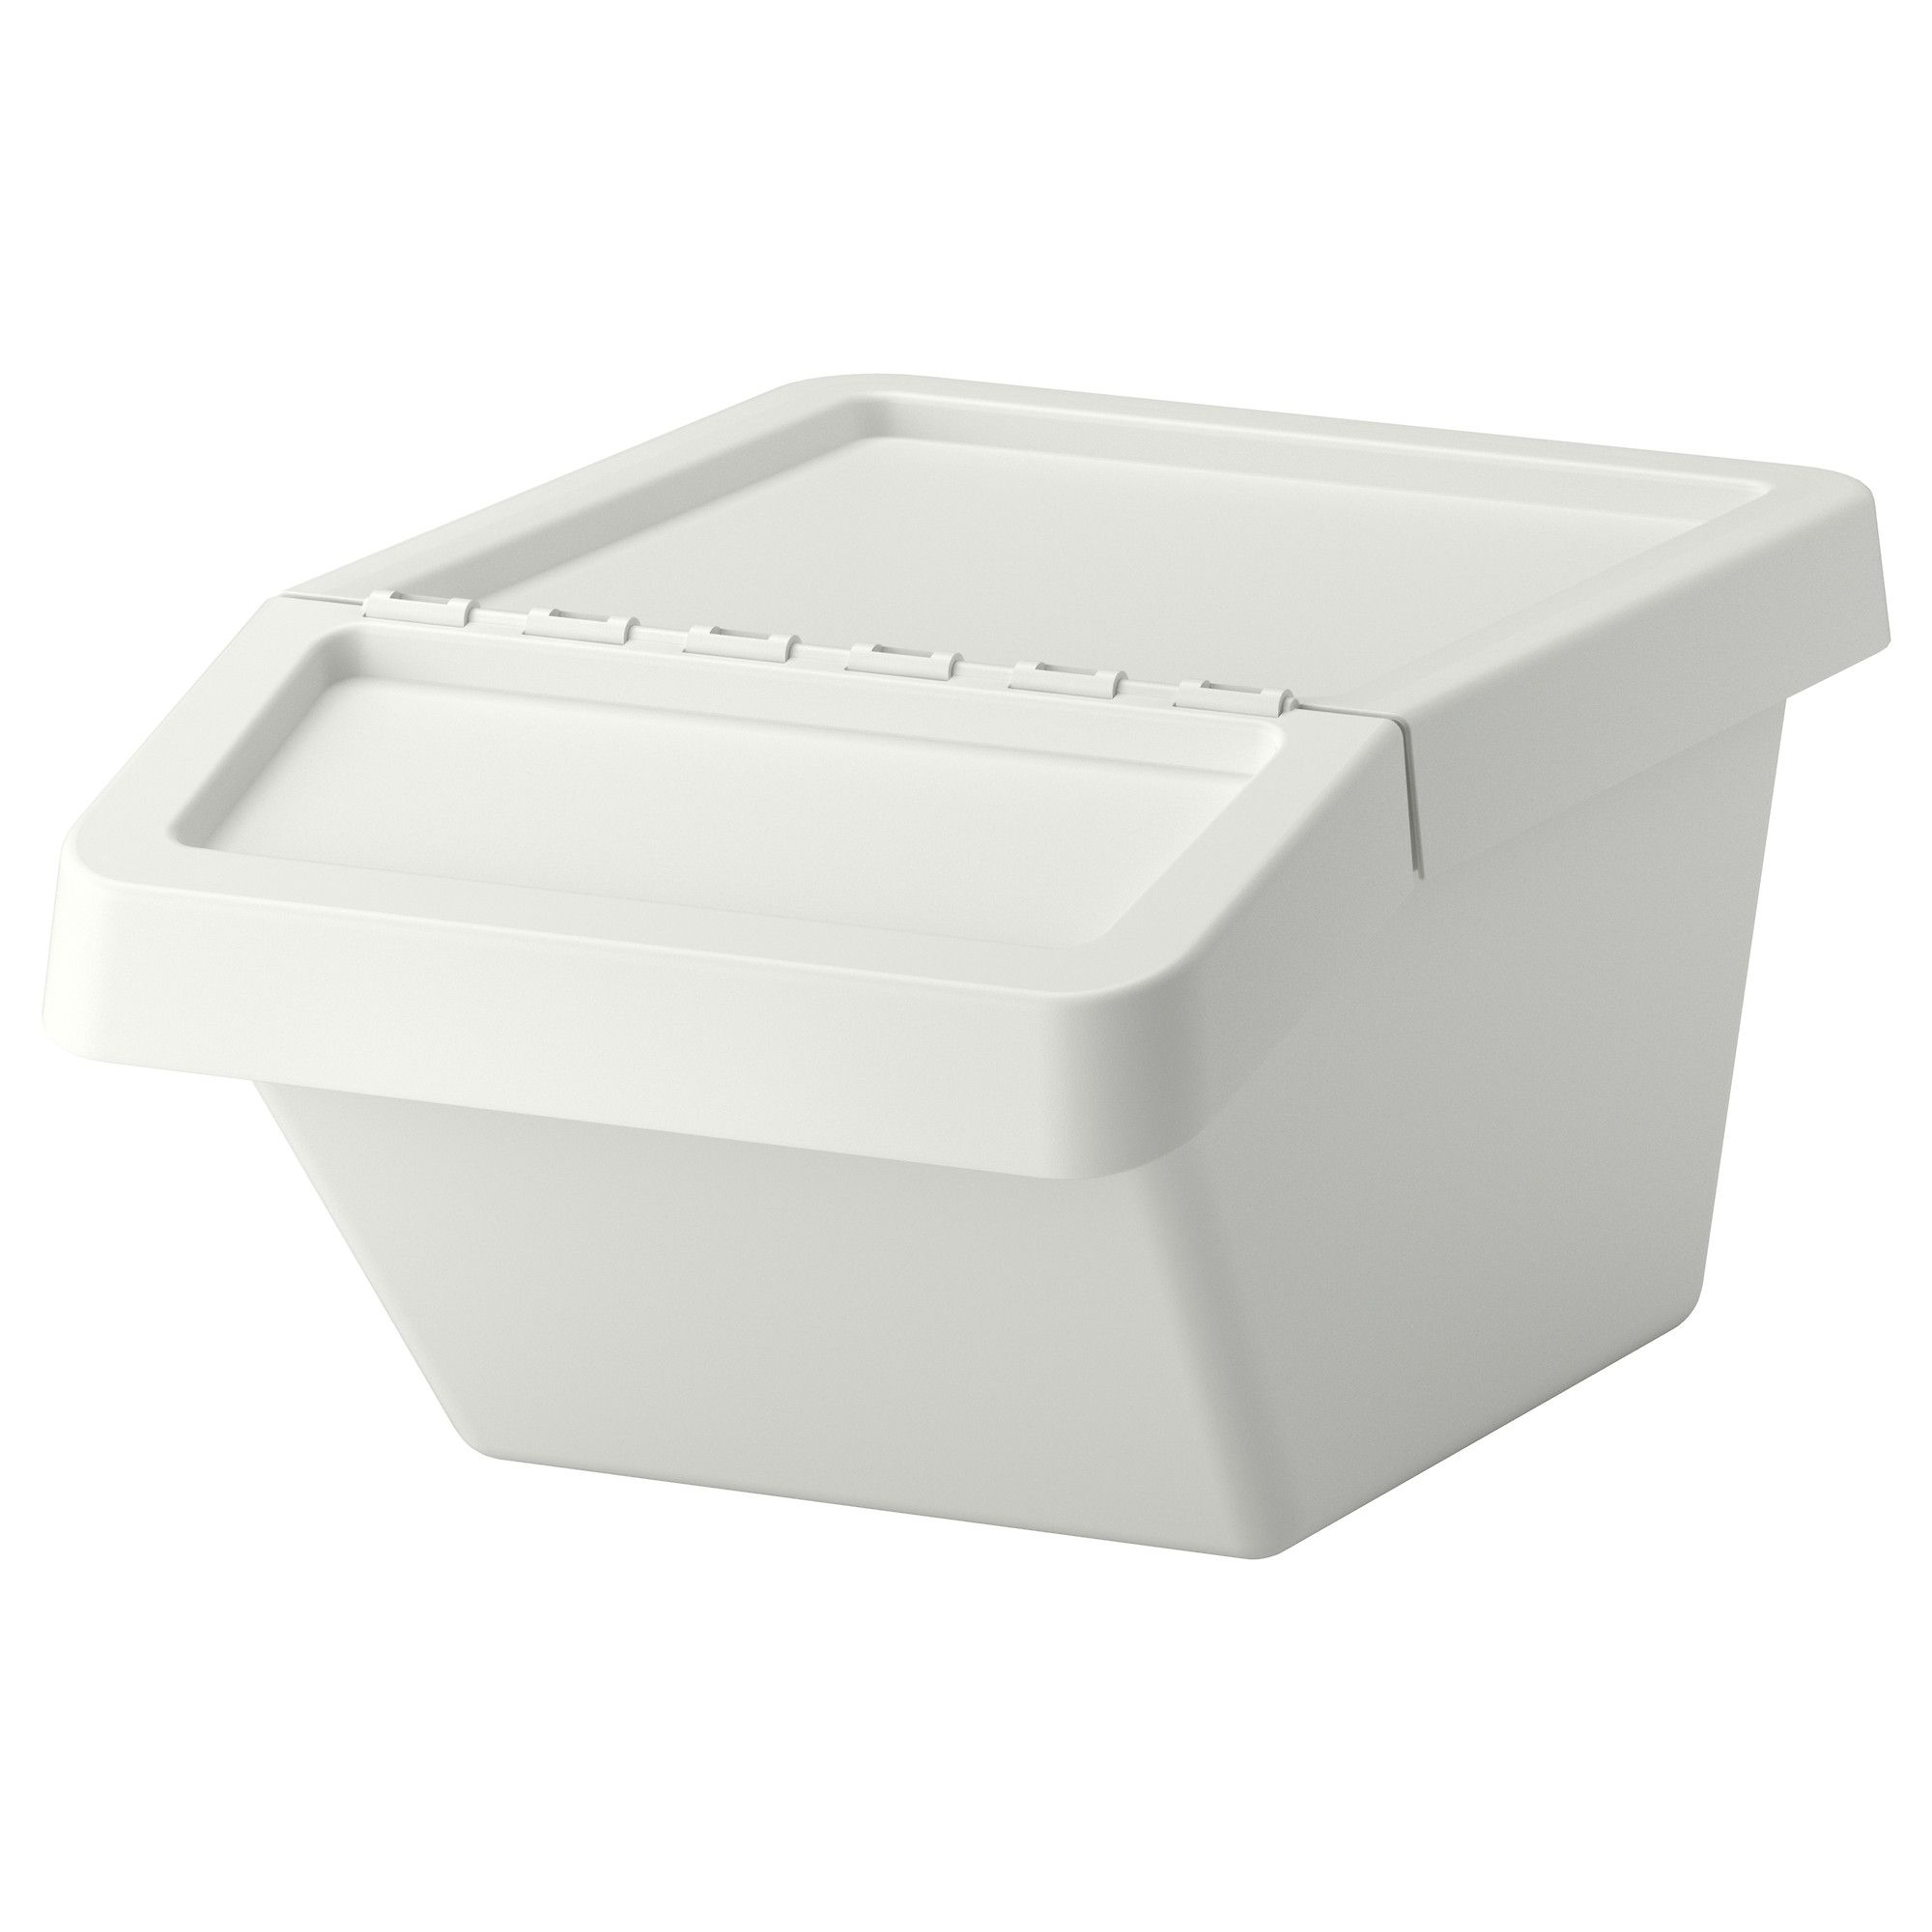 organizers cubes junk organizer beyond tubs bath baskets shelving best savey shelves with bins tub target closet bench home systems depot basket wire marvelous storage and